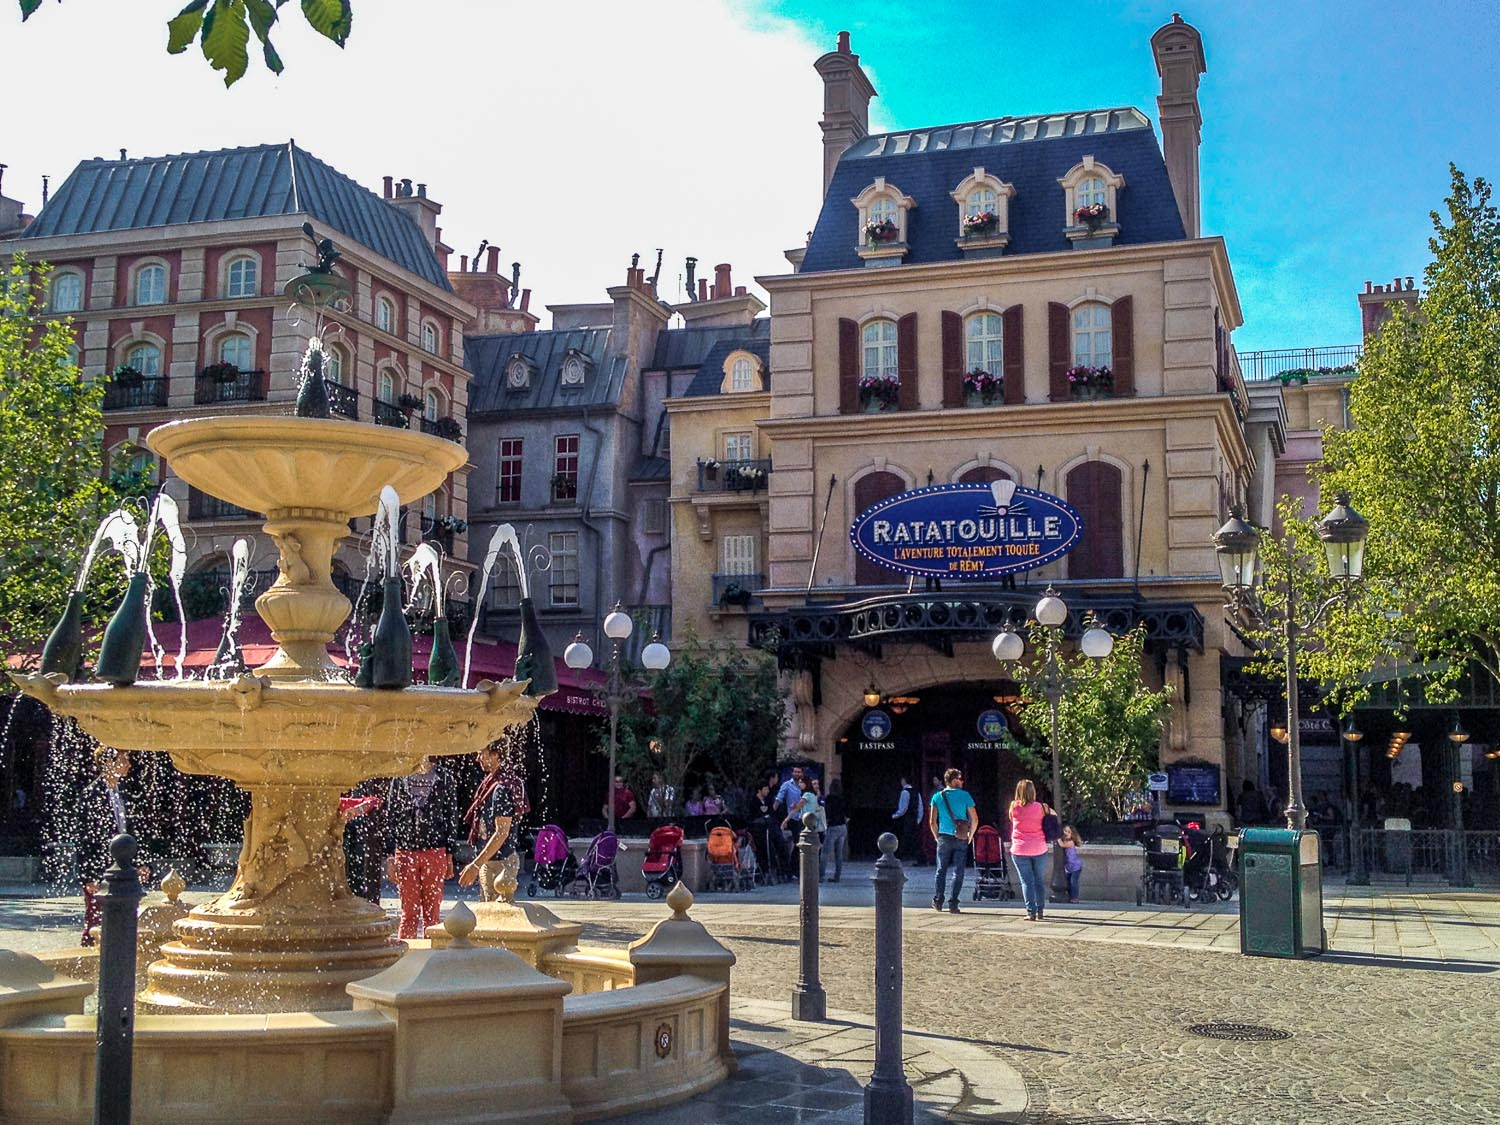 La Place de Rémy Ratatouille Ride Disneyland Paris